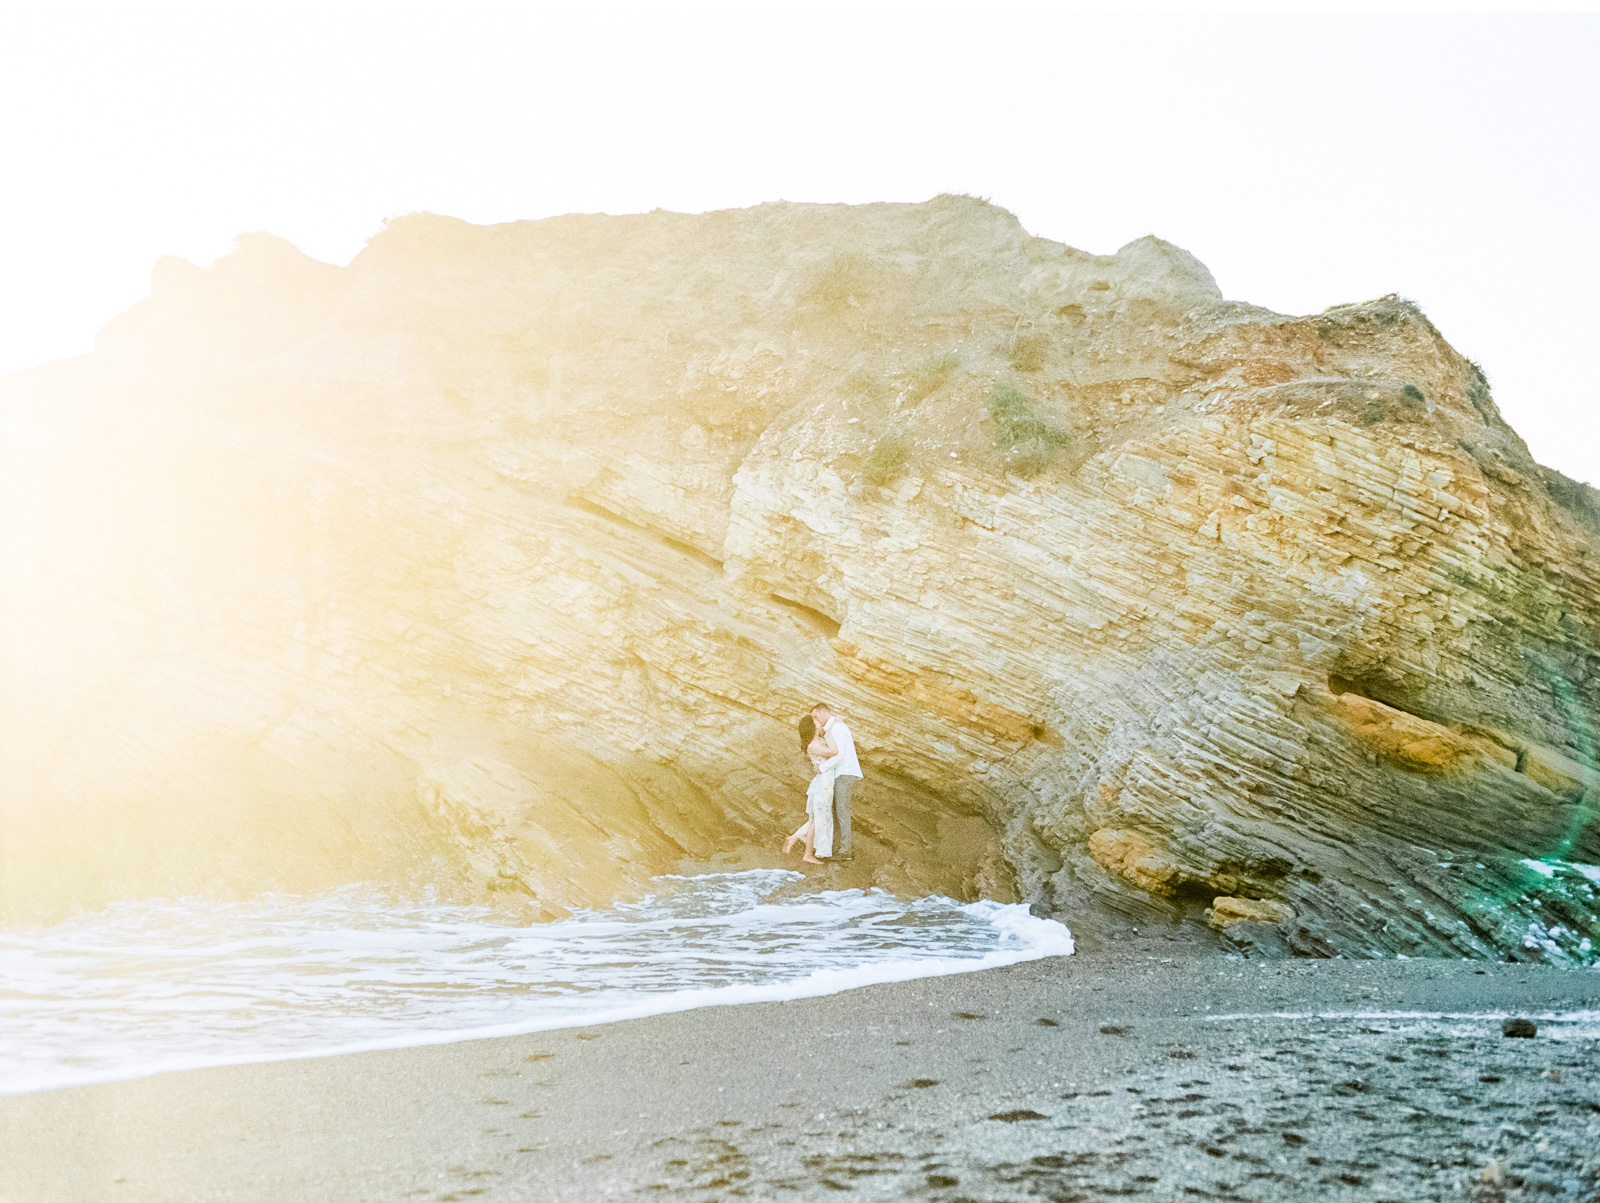 Natalie-Schutt-Photography-Malibu-Engagements-Malibu-Wedding-Beachside-Wedding-Fine-Art-Wedding-Photography-Southern-California-Brides_07.jpg